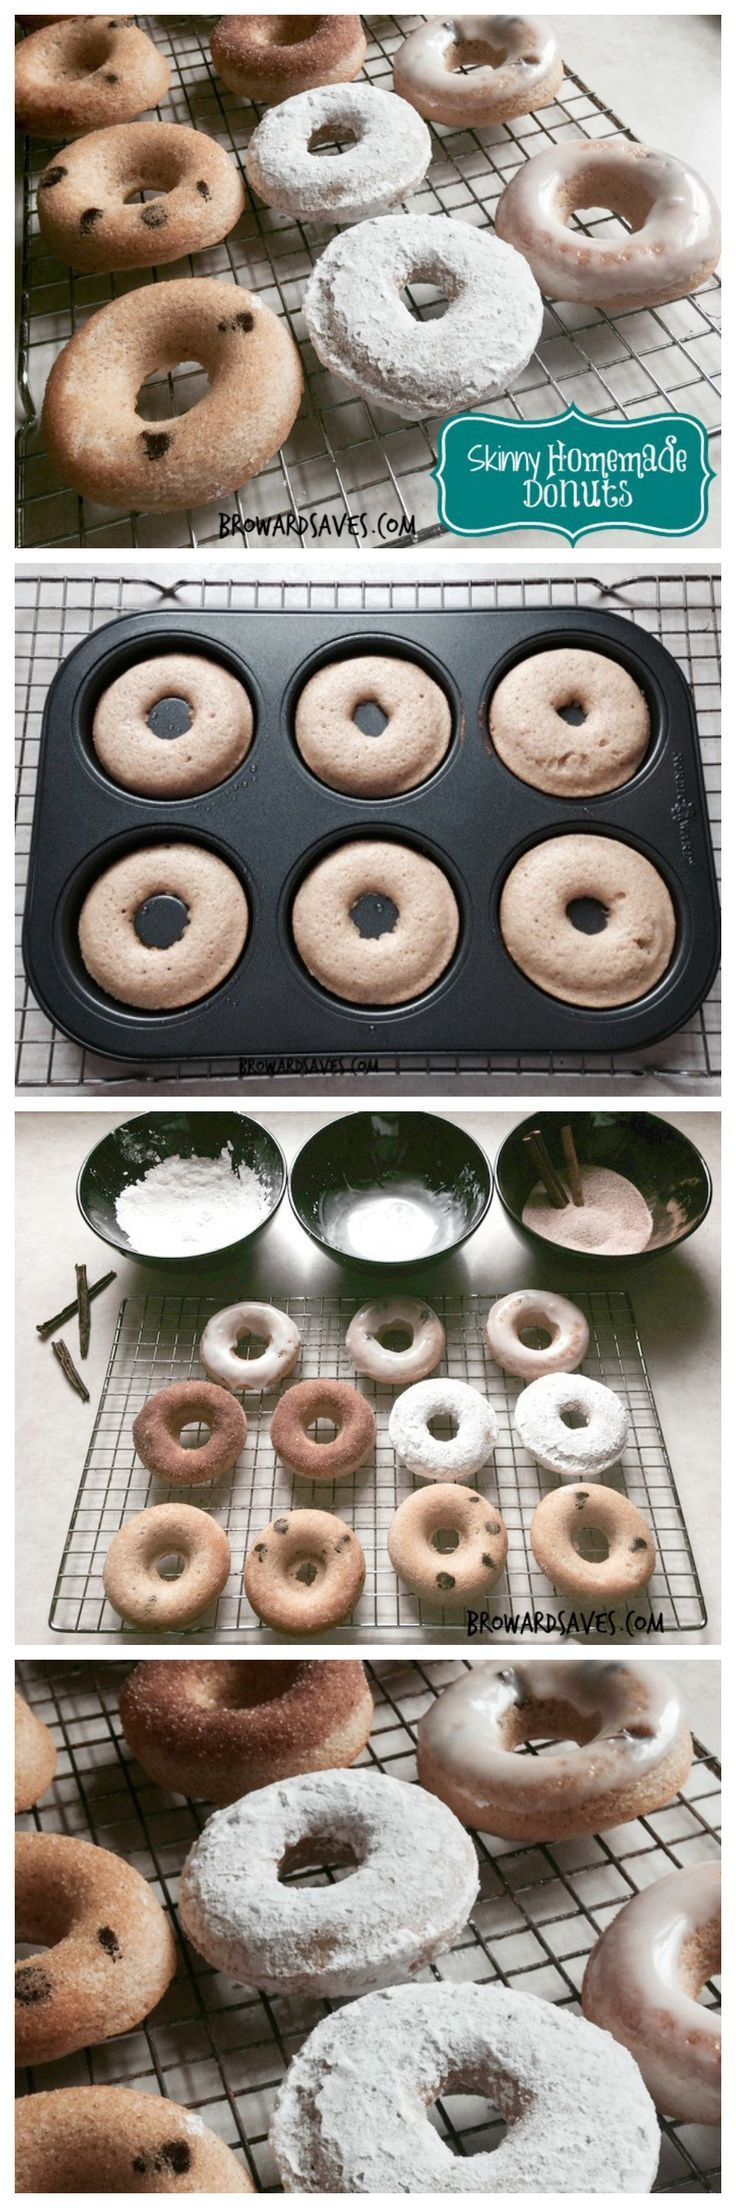 Skinny homemade Donuts - Only 60 calories each and so much flavor! This is the best donut recipe you will every try and so easy to make.